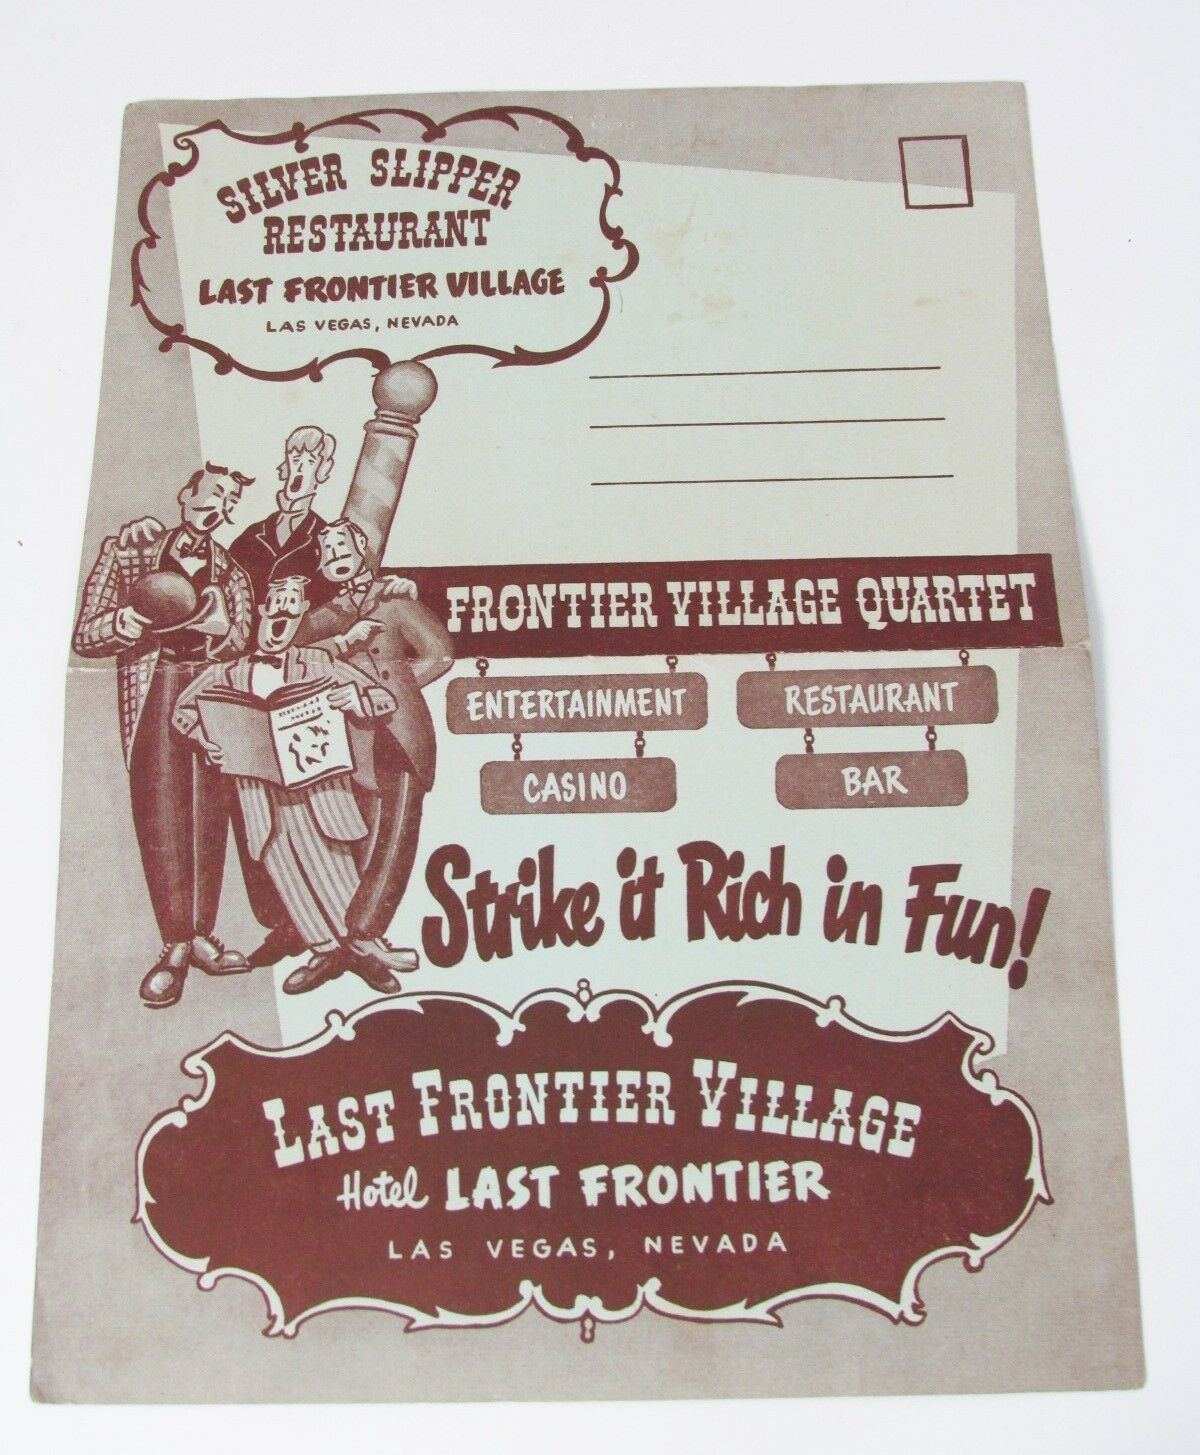 The last frontier casino restaurant menu that was a crazy game of poker lyrics meaning